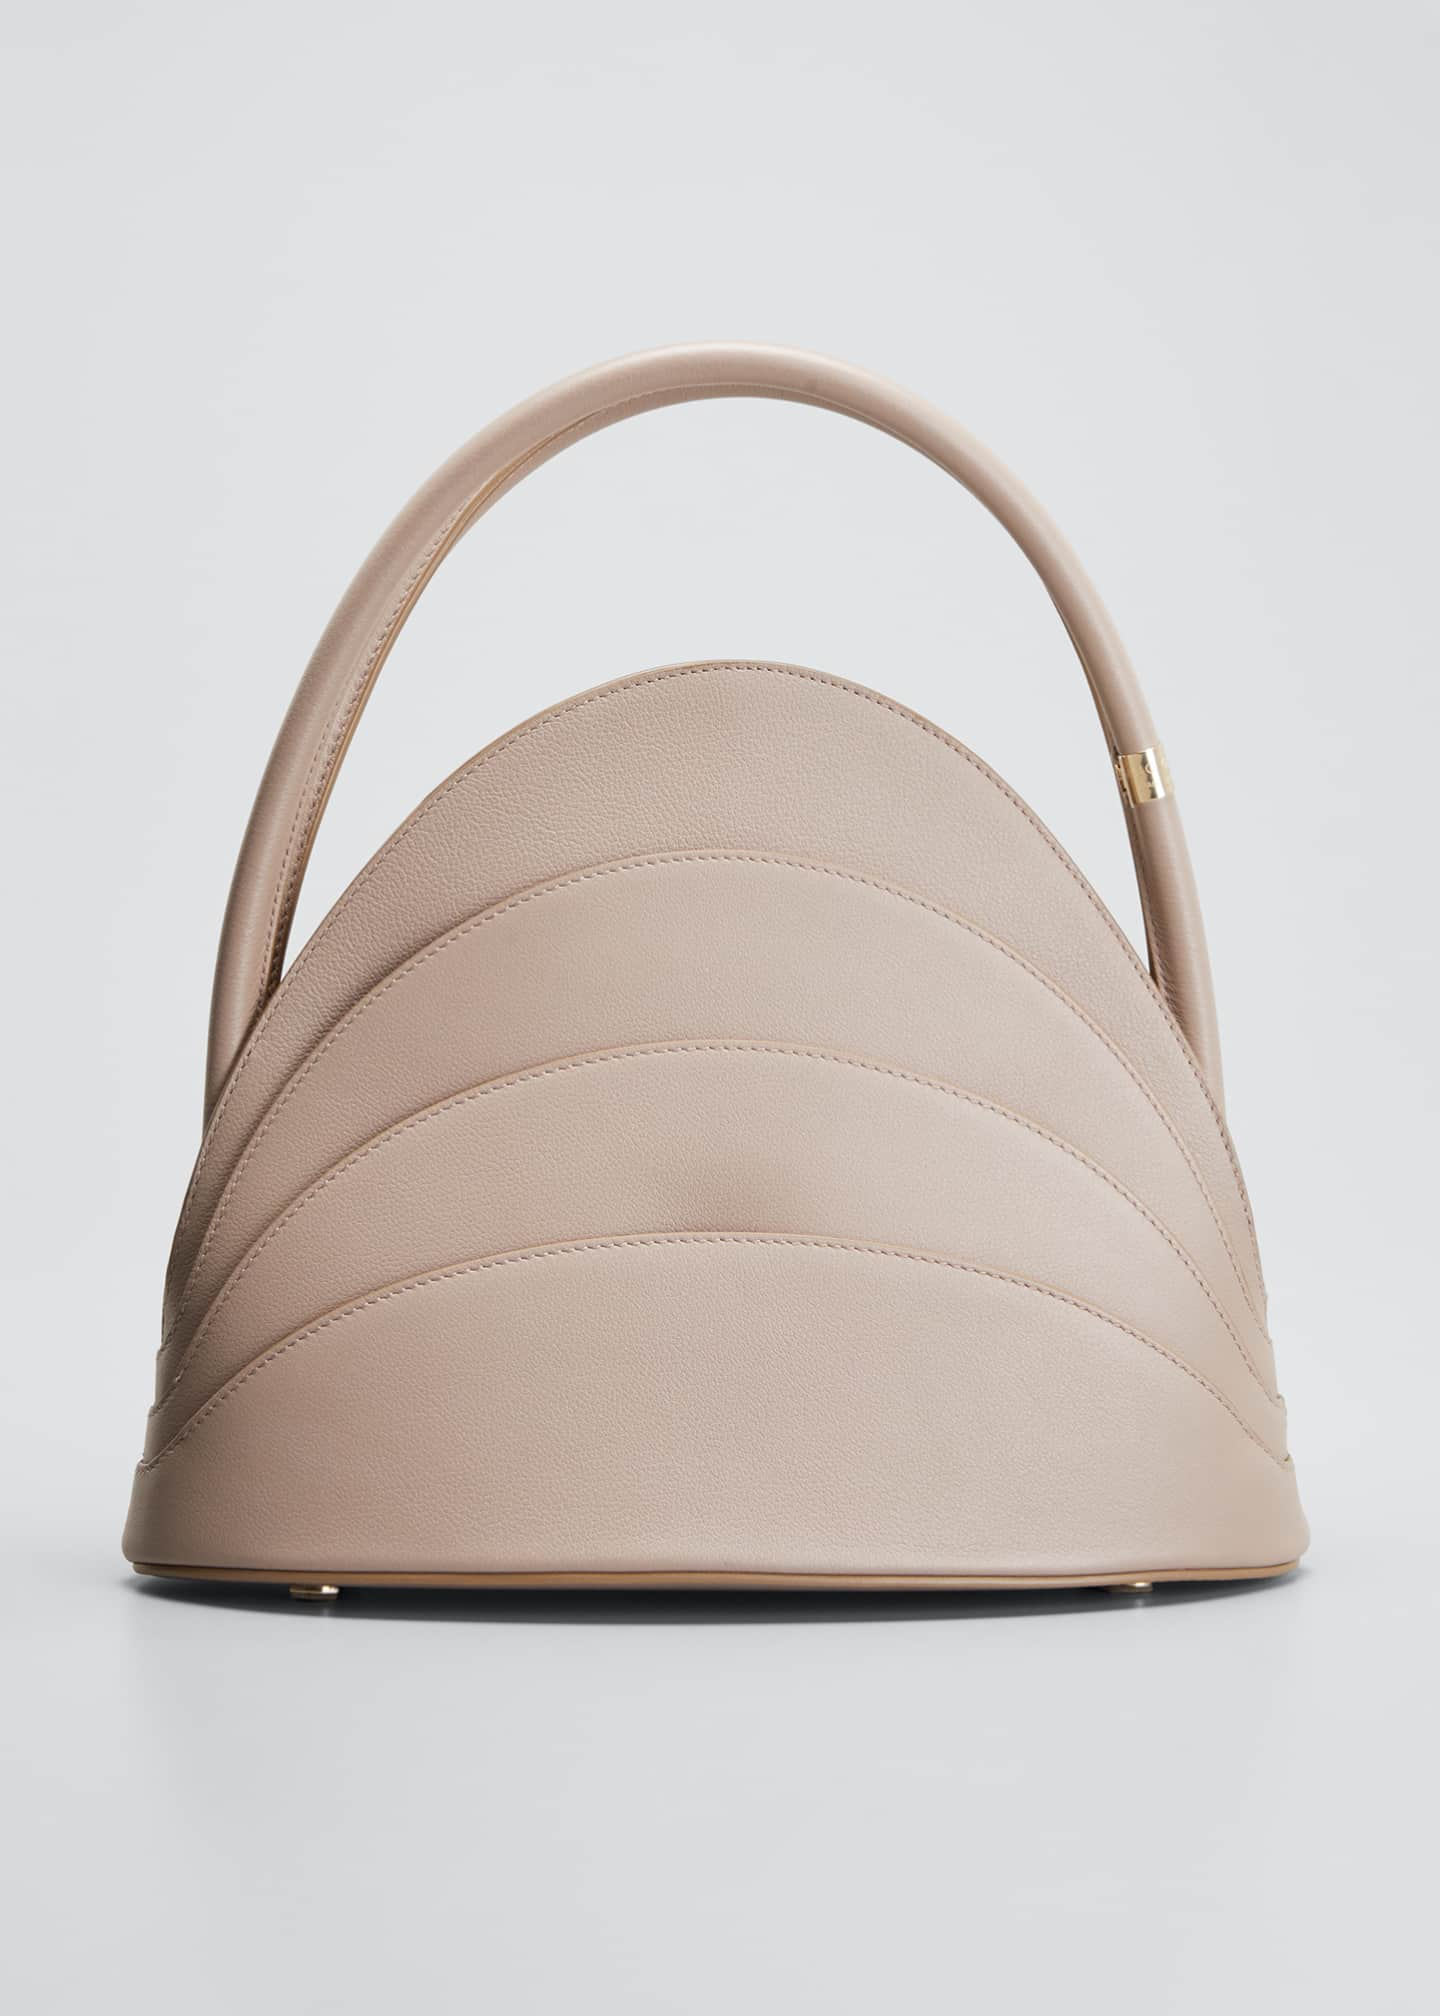 Image 1 of 5: Millefoglie Leather Top-Handle Bag